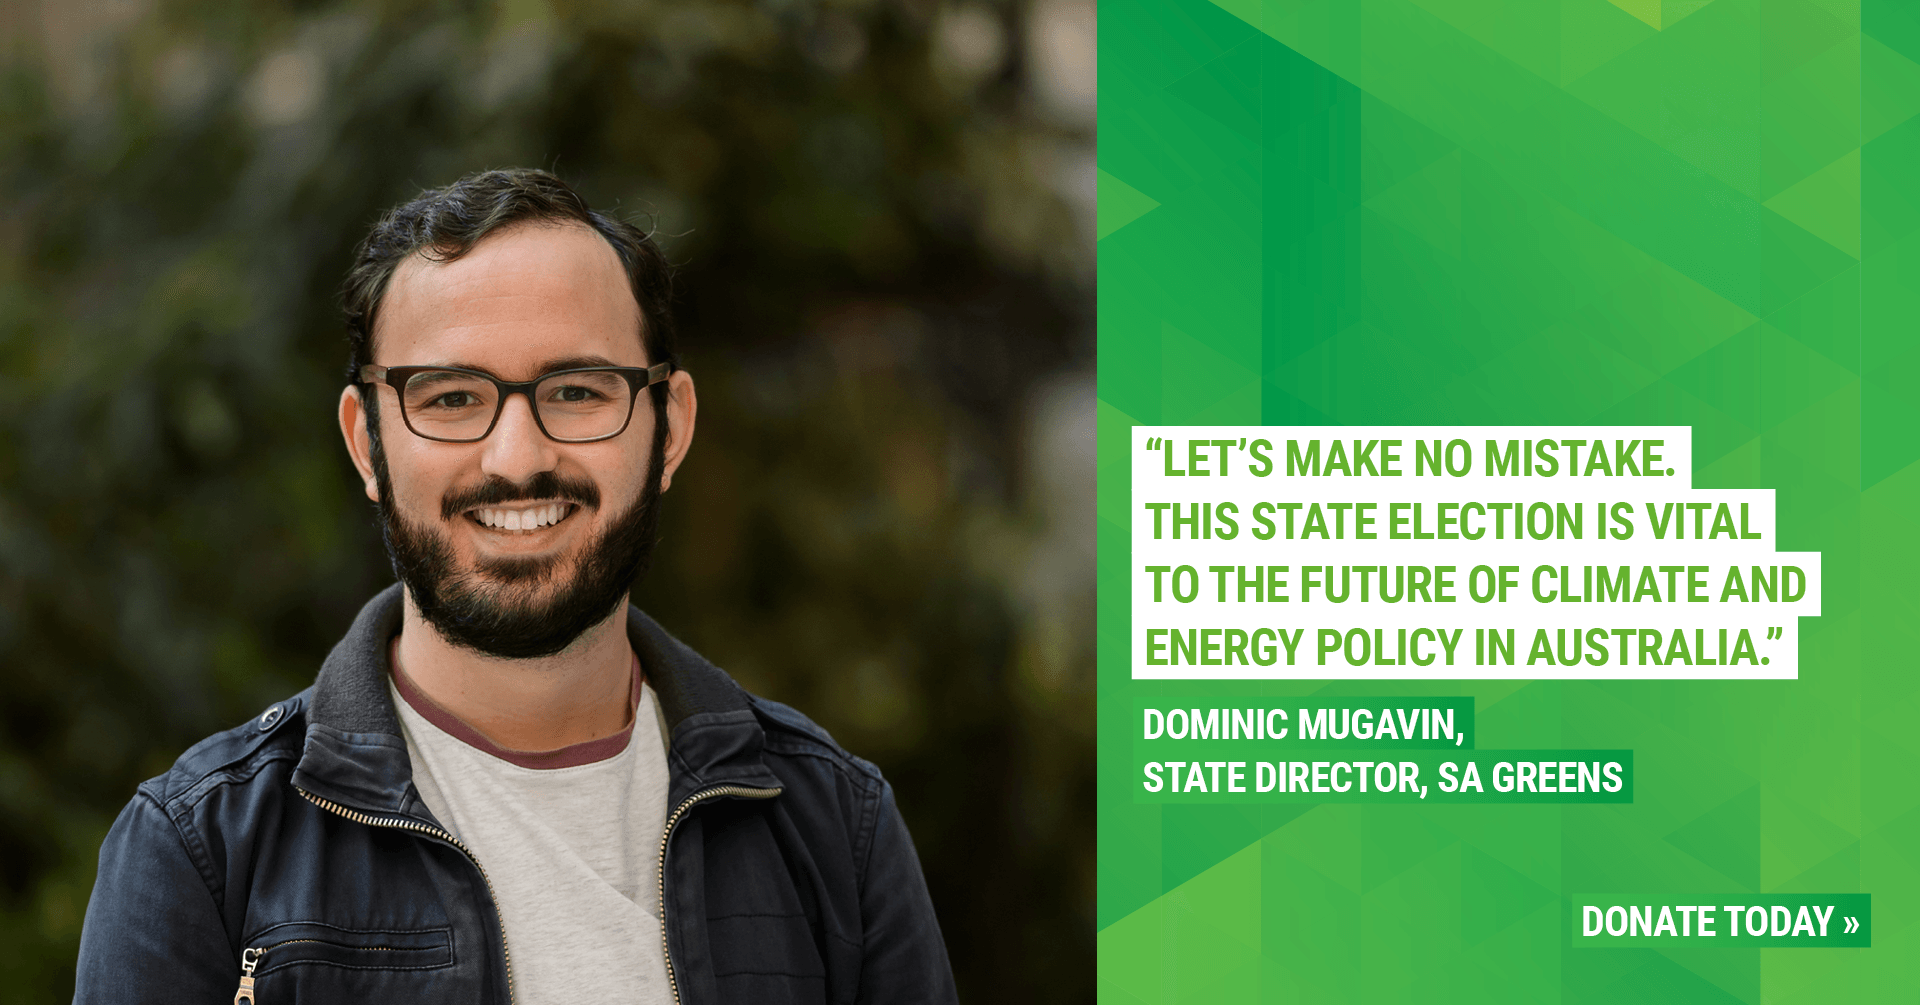 """Let's make no mistake. The SA election is vital to the future of climate change and energy policy in Australia. Donate today"""